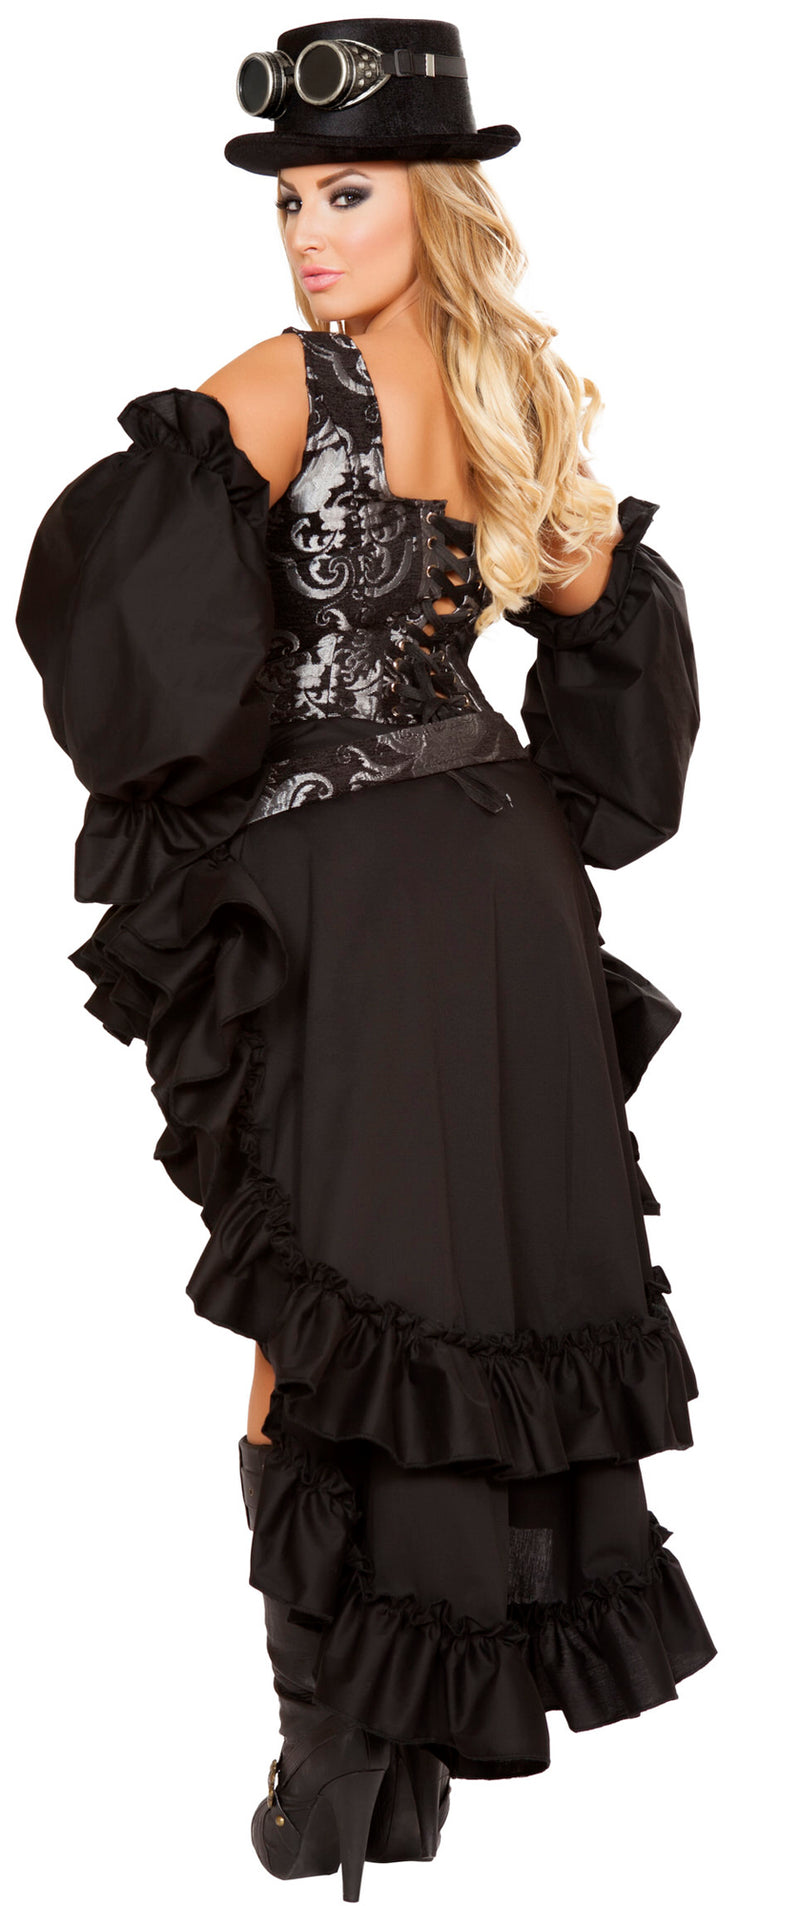 RM-4647 Black steampunk plus back